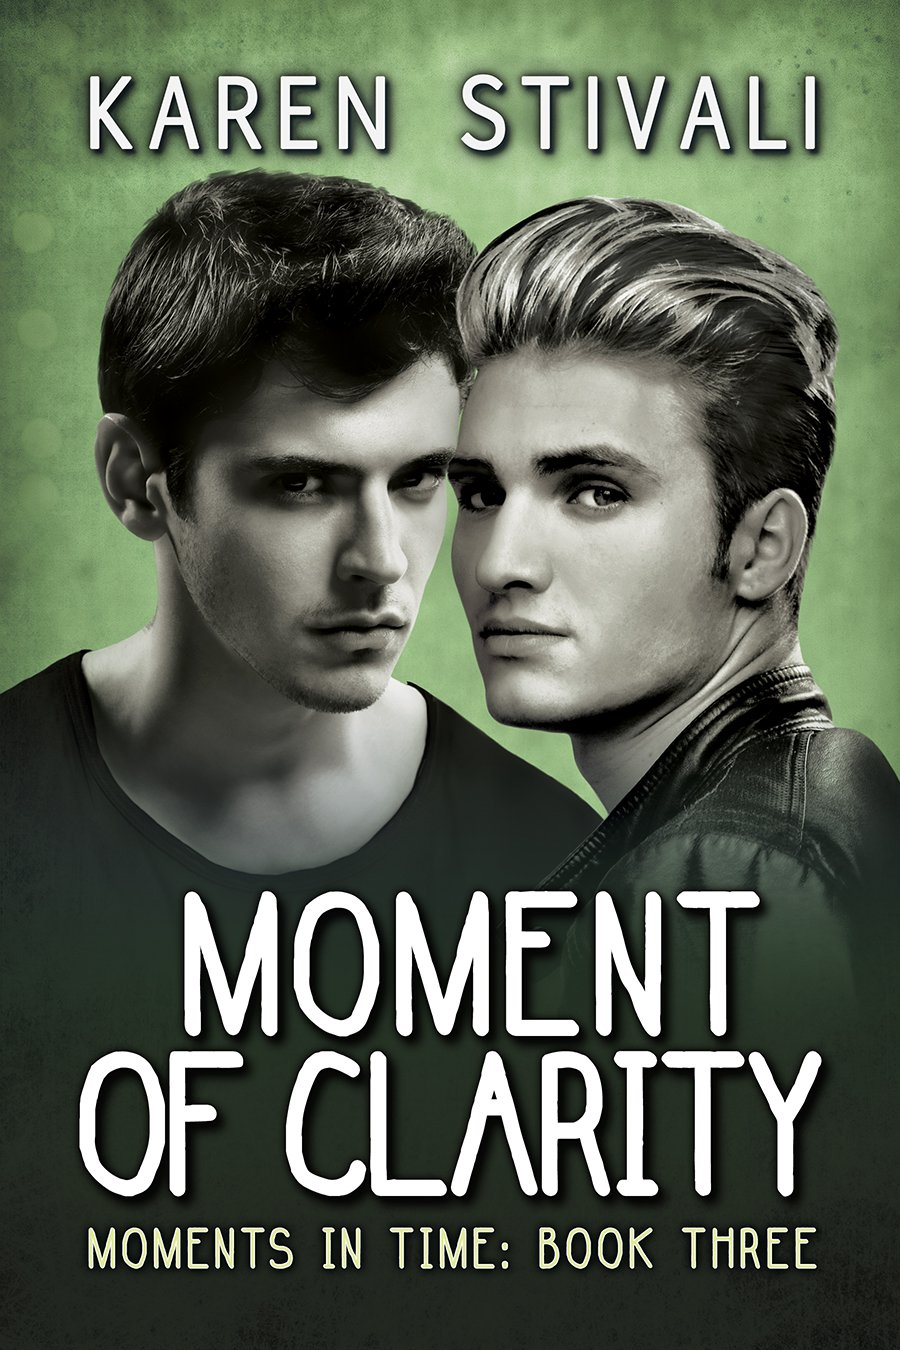 Moment of Clarity – Karen Stivali – 5 stars